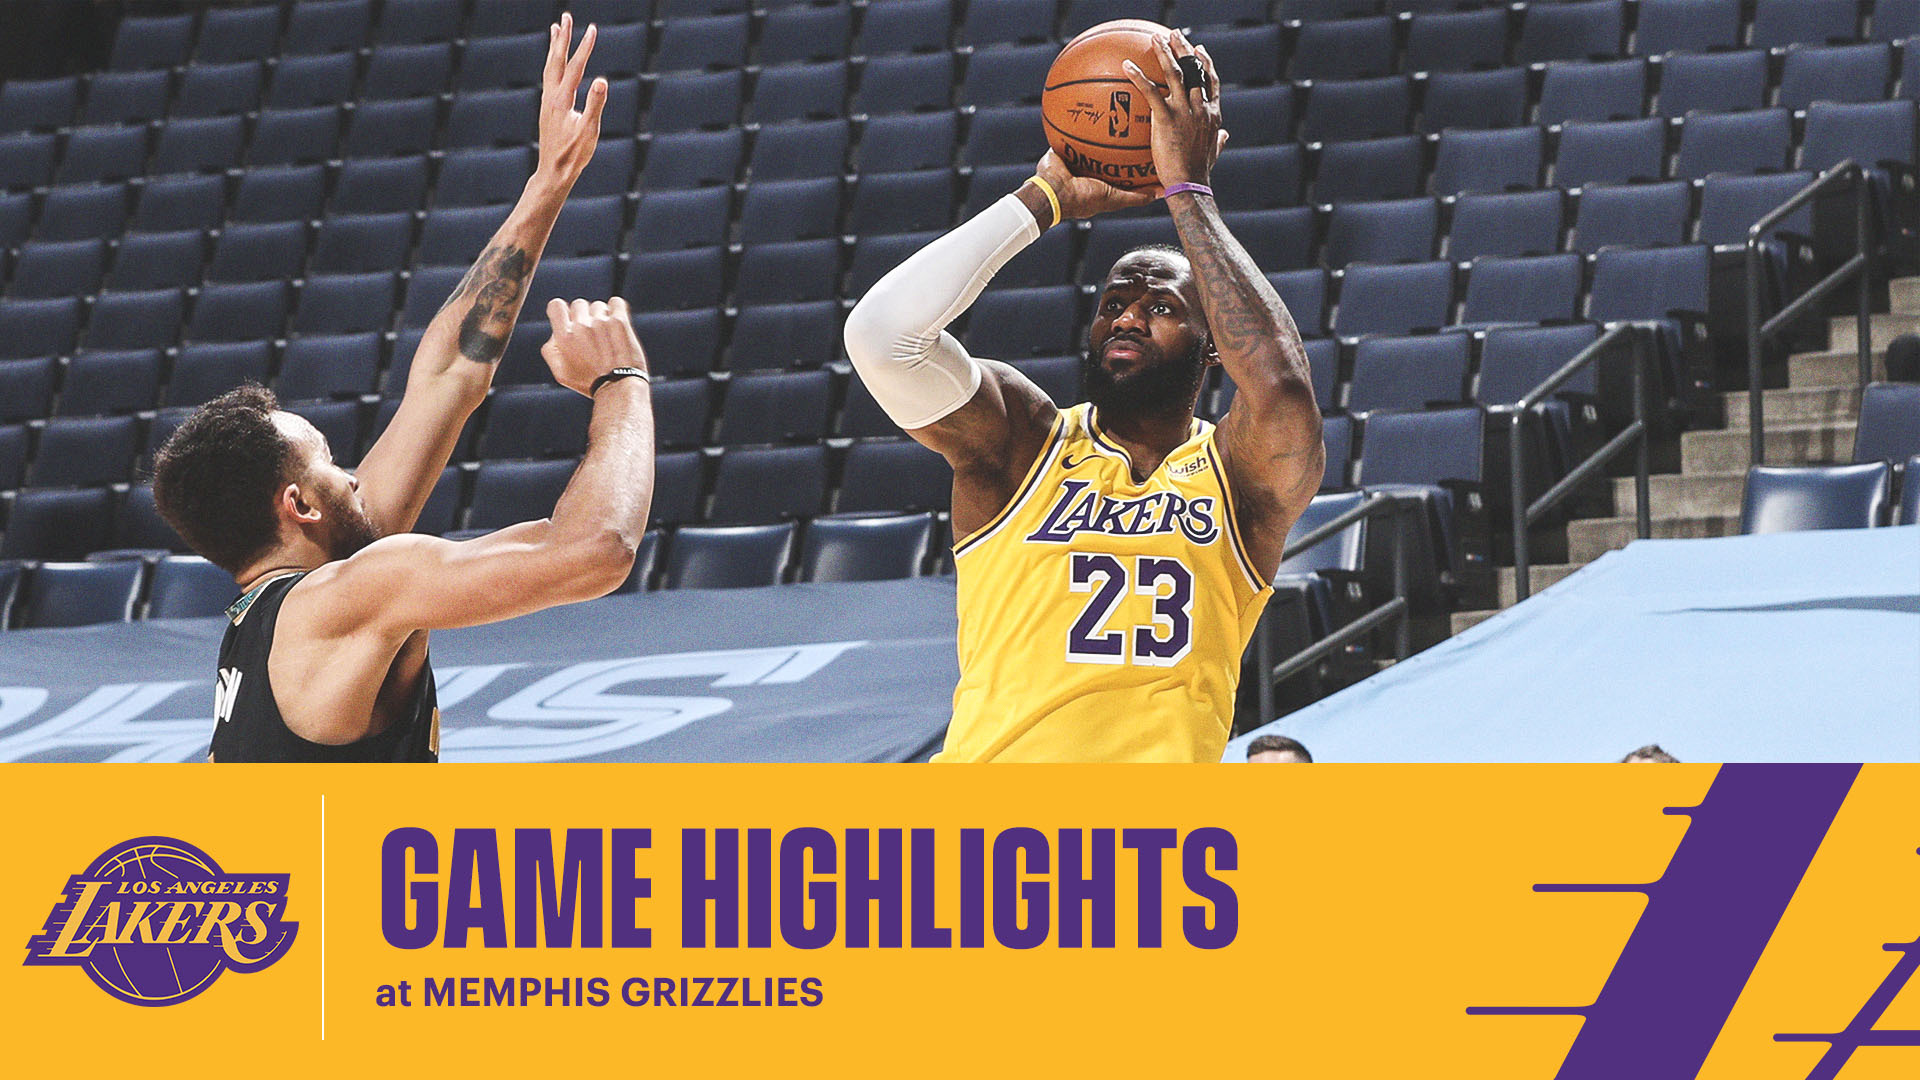 HIGHLIGHTS | LeBron James (26 pts, 11 reb, 7 ast) at Memphis Grizzlies